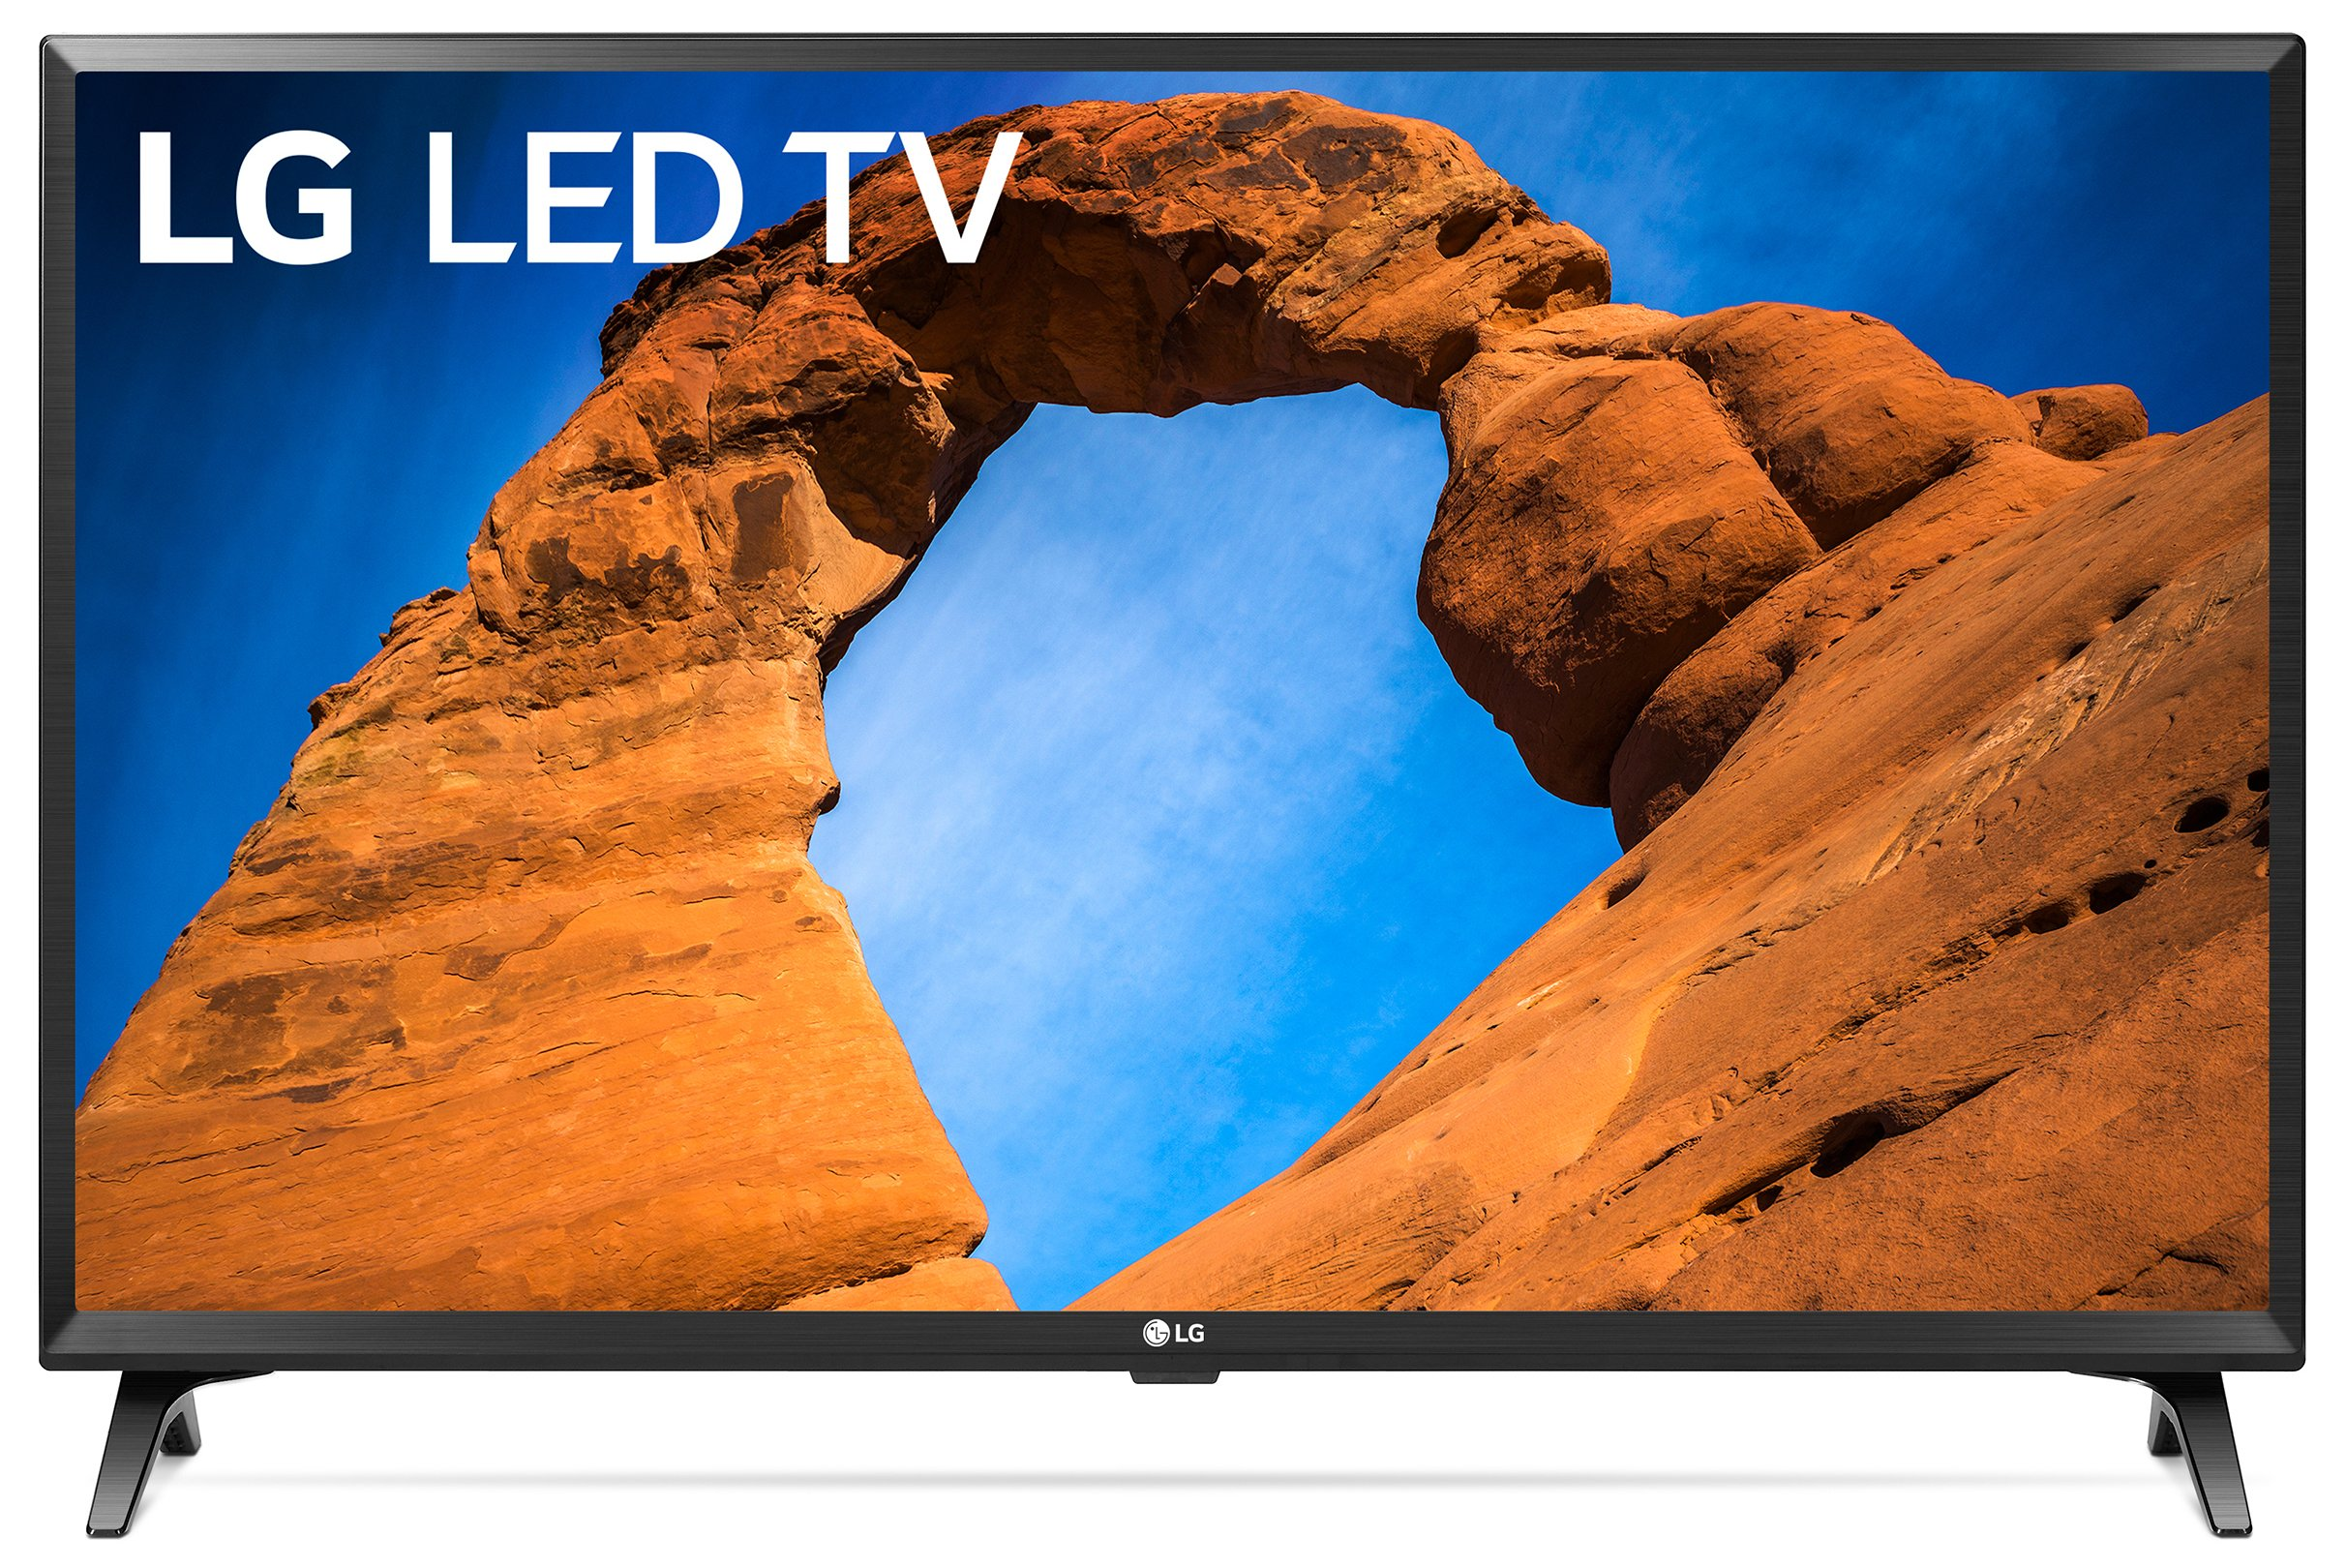 LG Electronics 32LK540BPUA 32-Inch 720p Smart LED TV (2018 Model) by LG